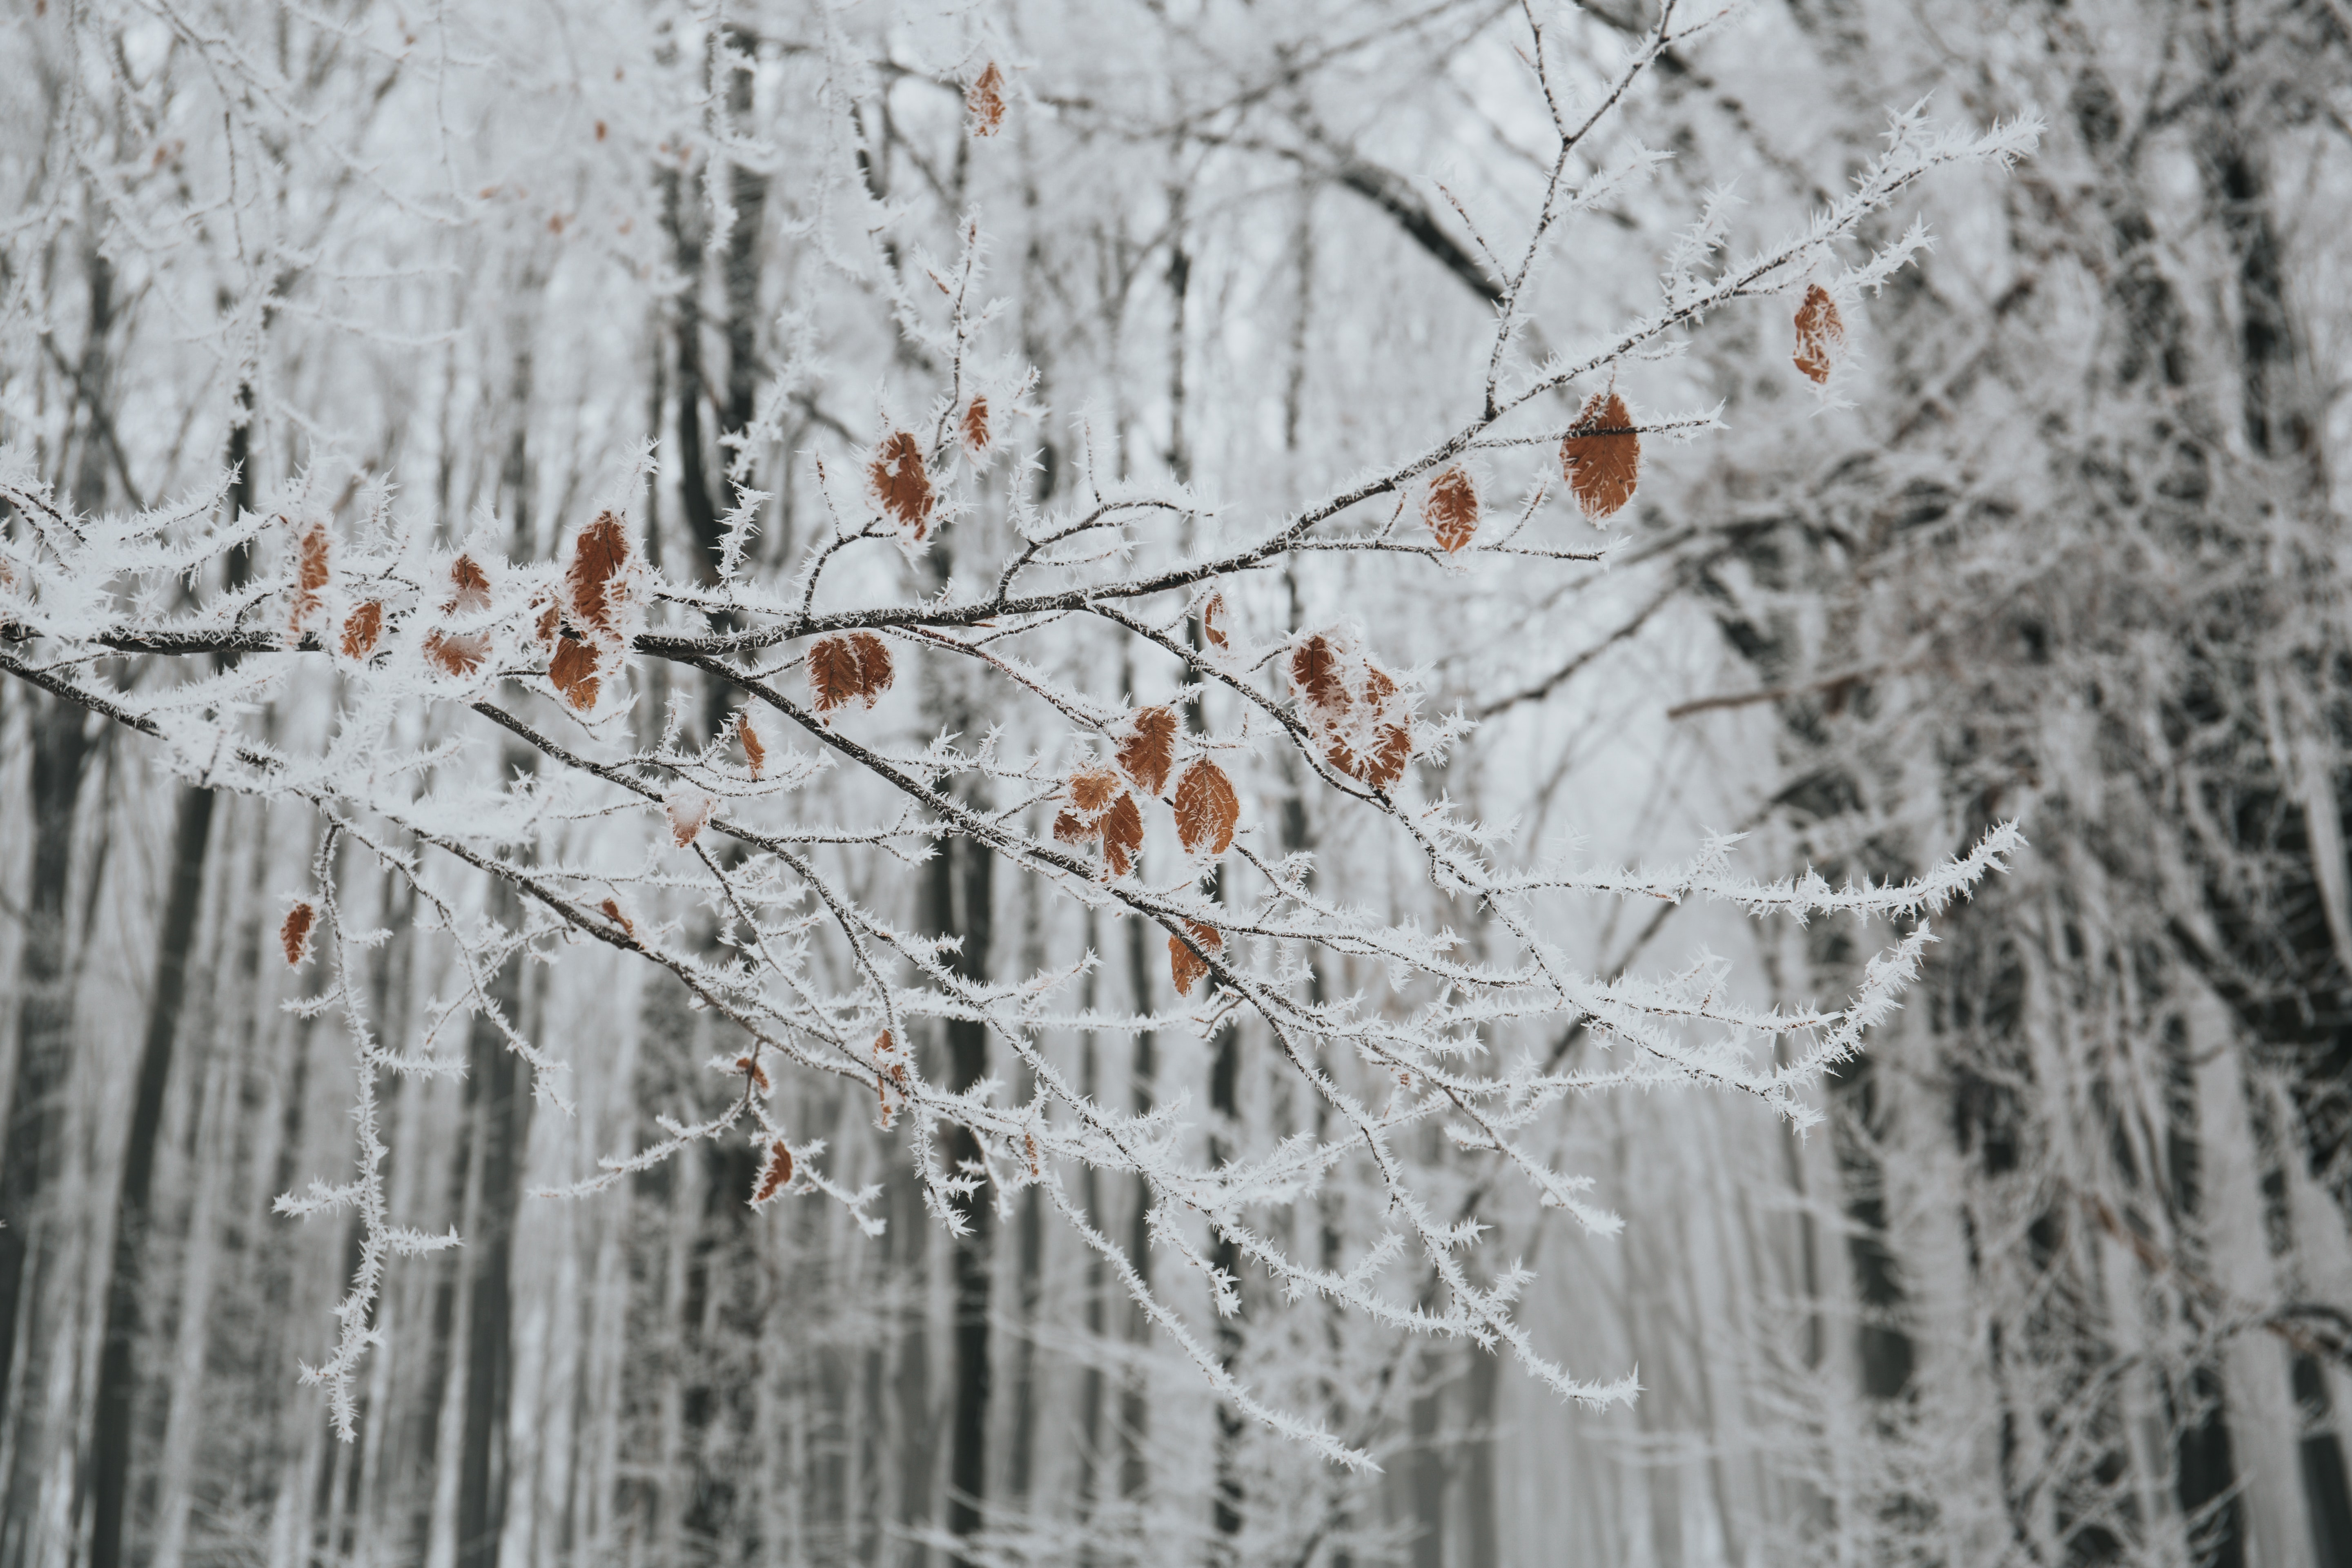 A few brown leaves hang on the branches of trees covered in winter frost